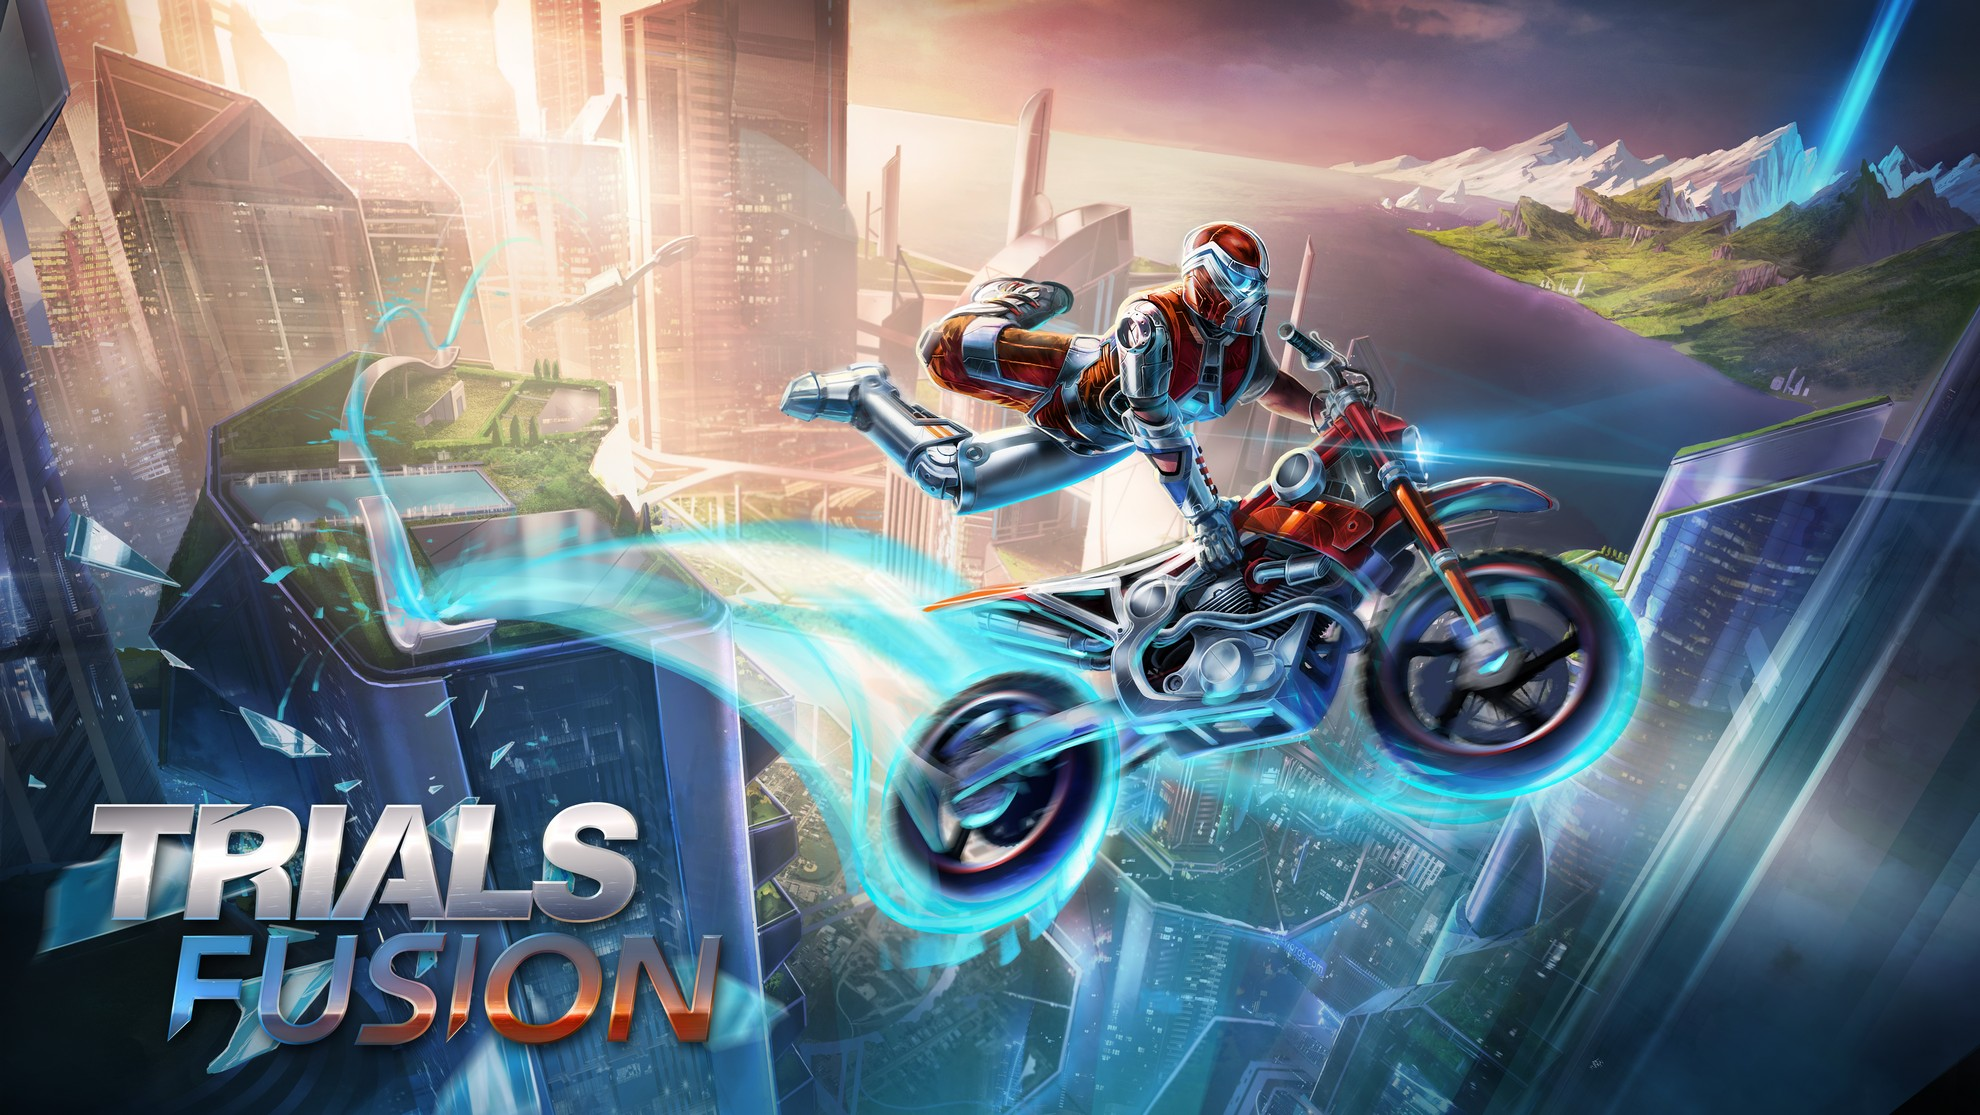 LagZero Analiza: Trials Fusion [Review]